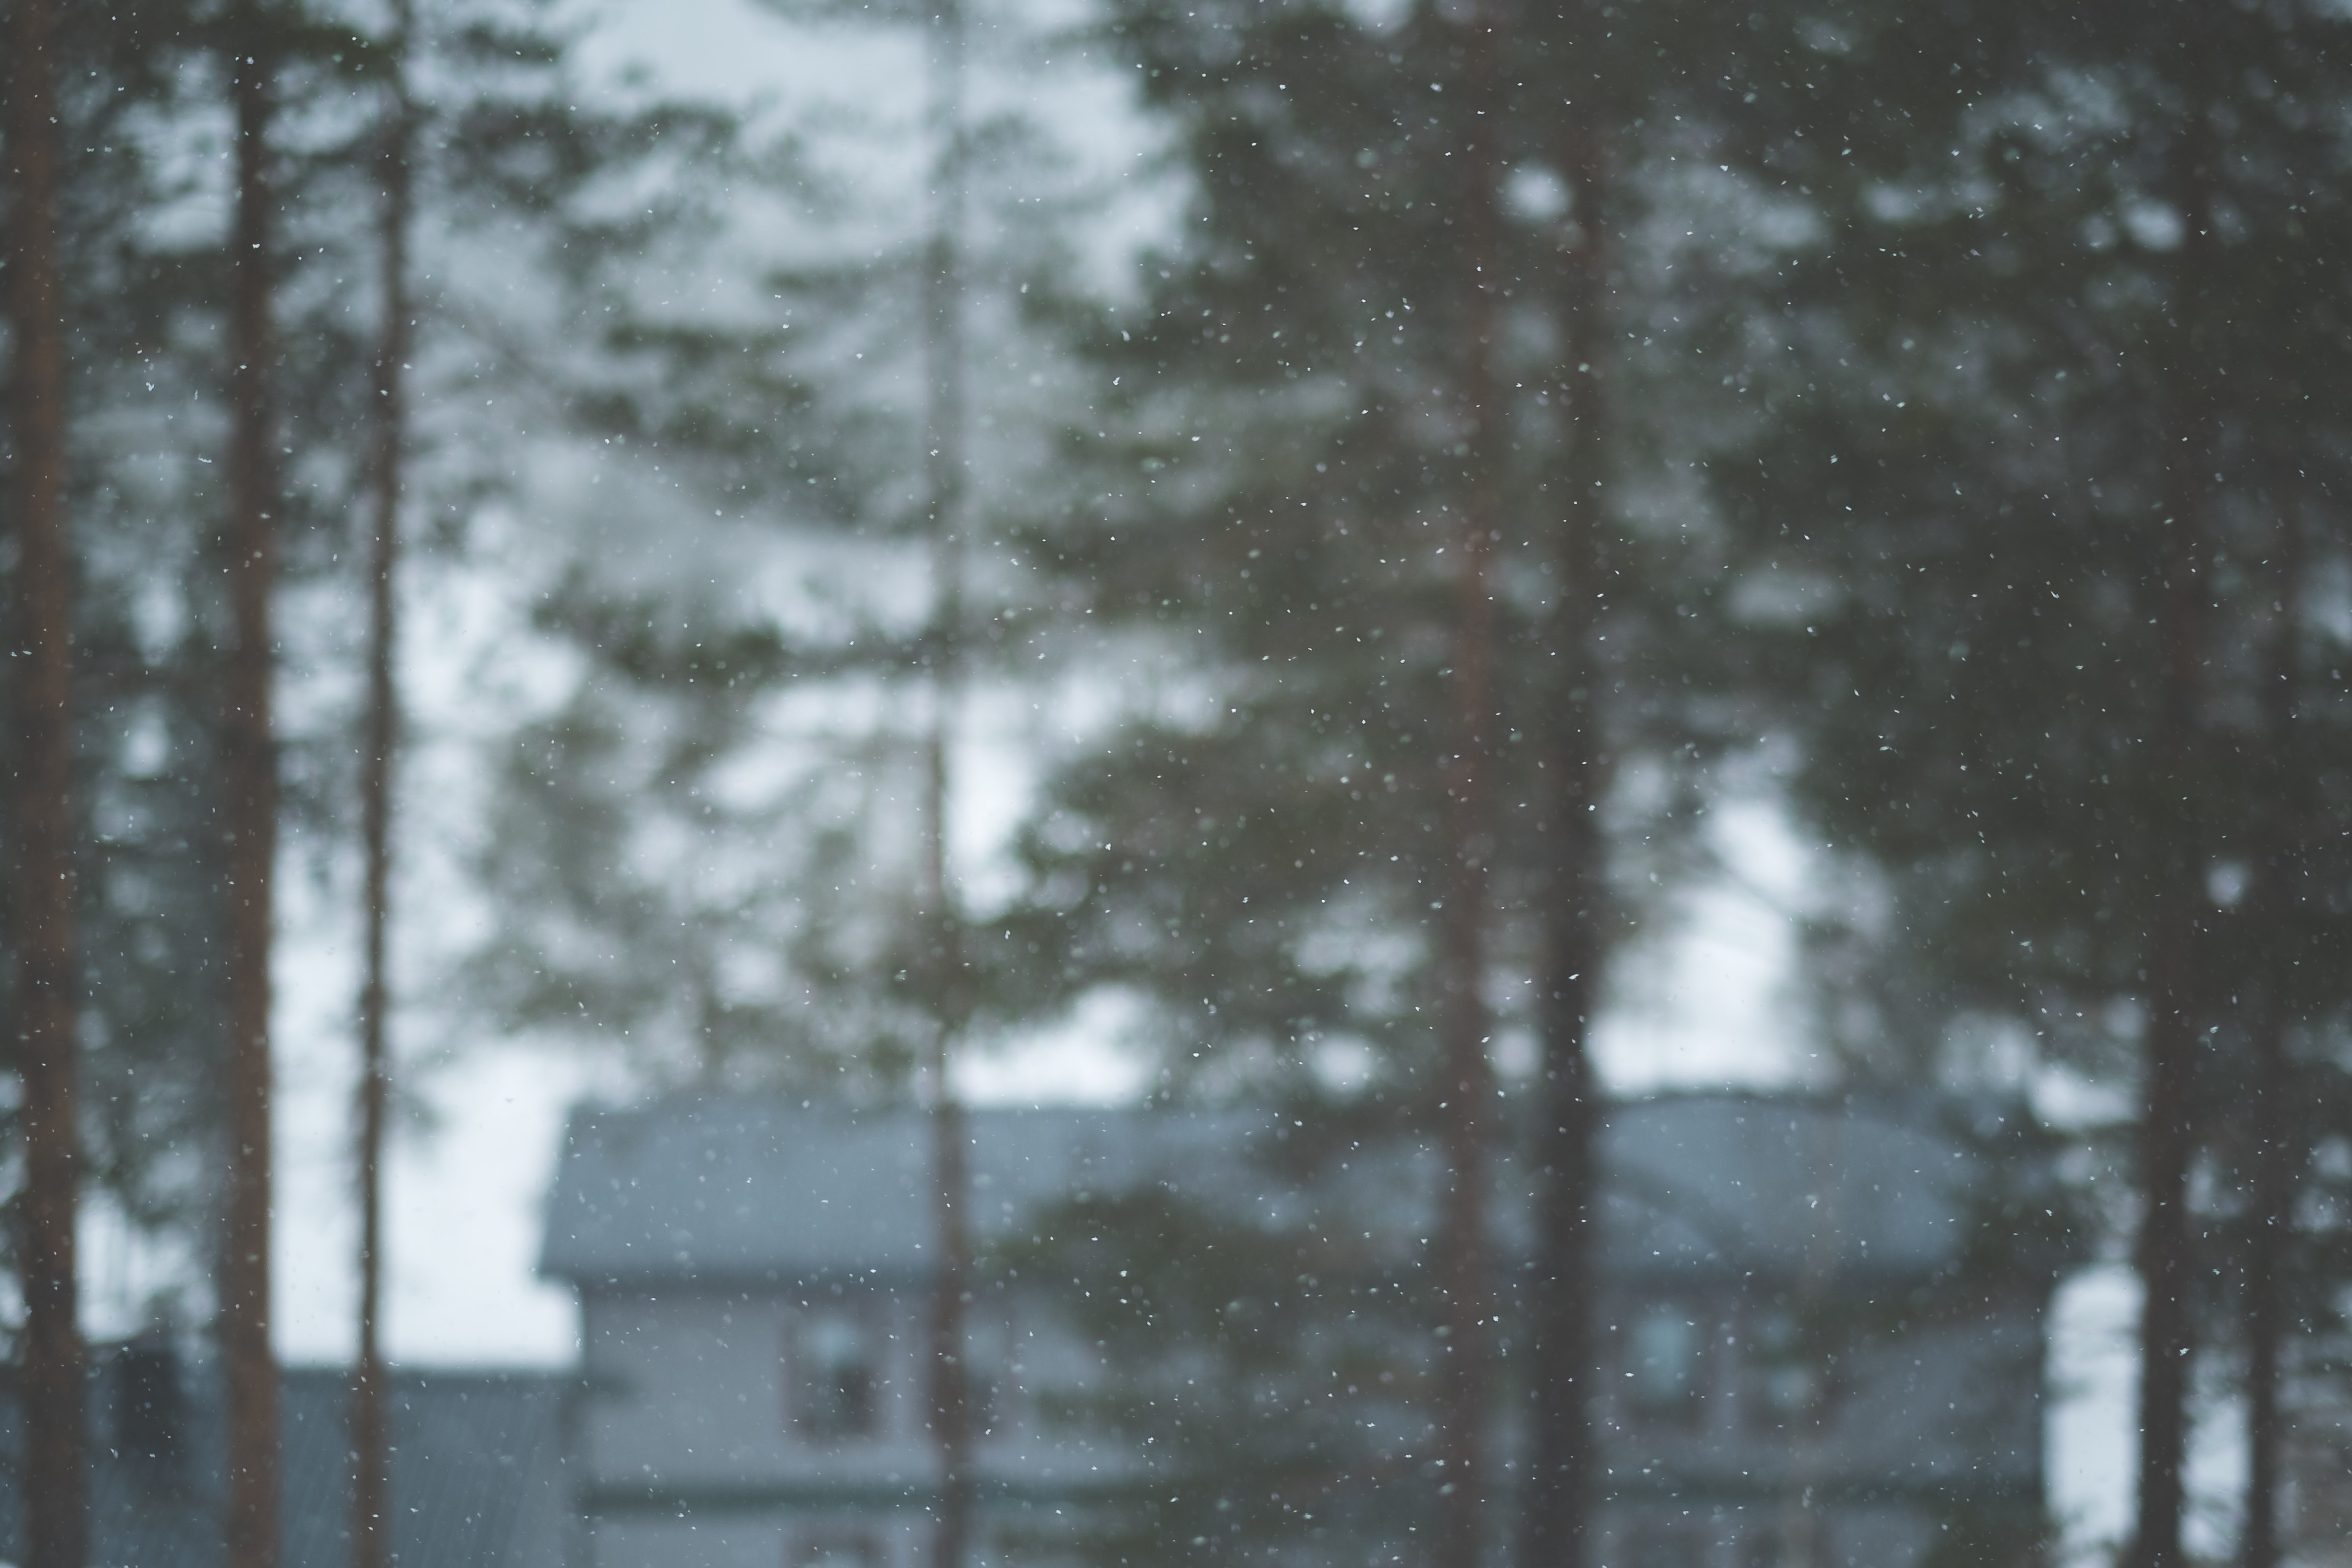 Snowflakes falling in the foreground with  tall trees and a house out of focus in the background